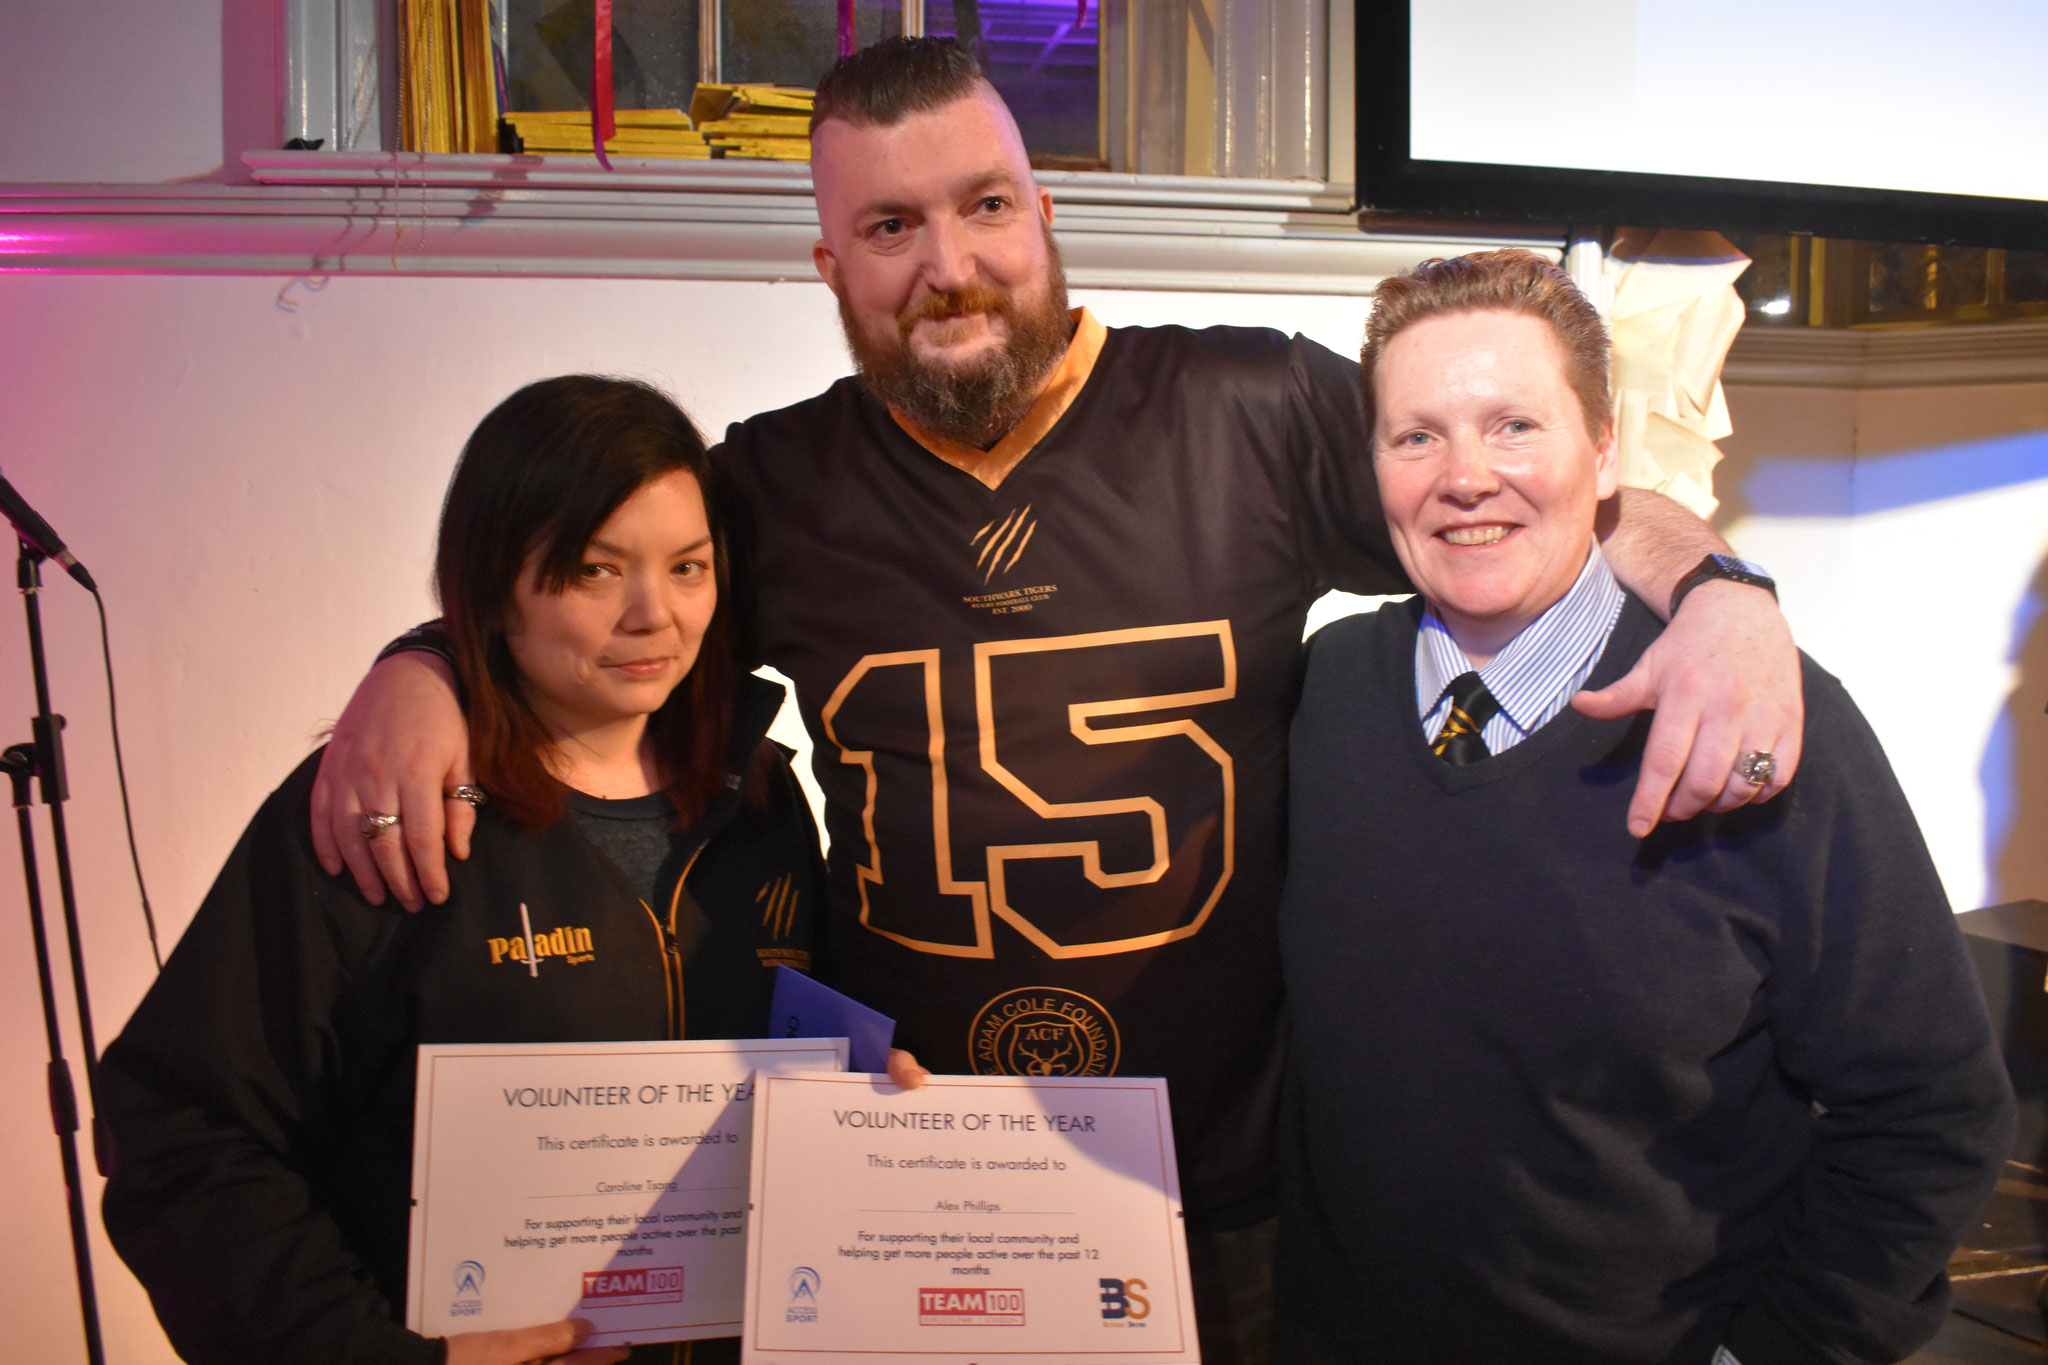 Carolline Tsang and Alex Phillips Southwark Tigers Volunteer of the year